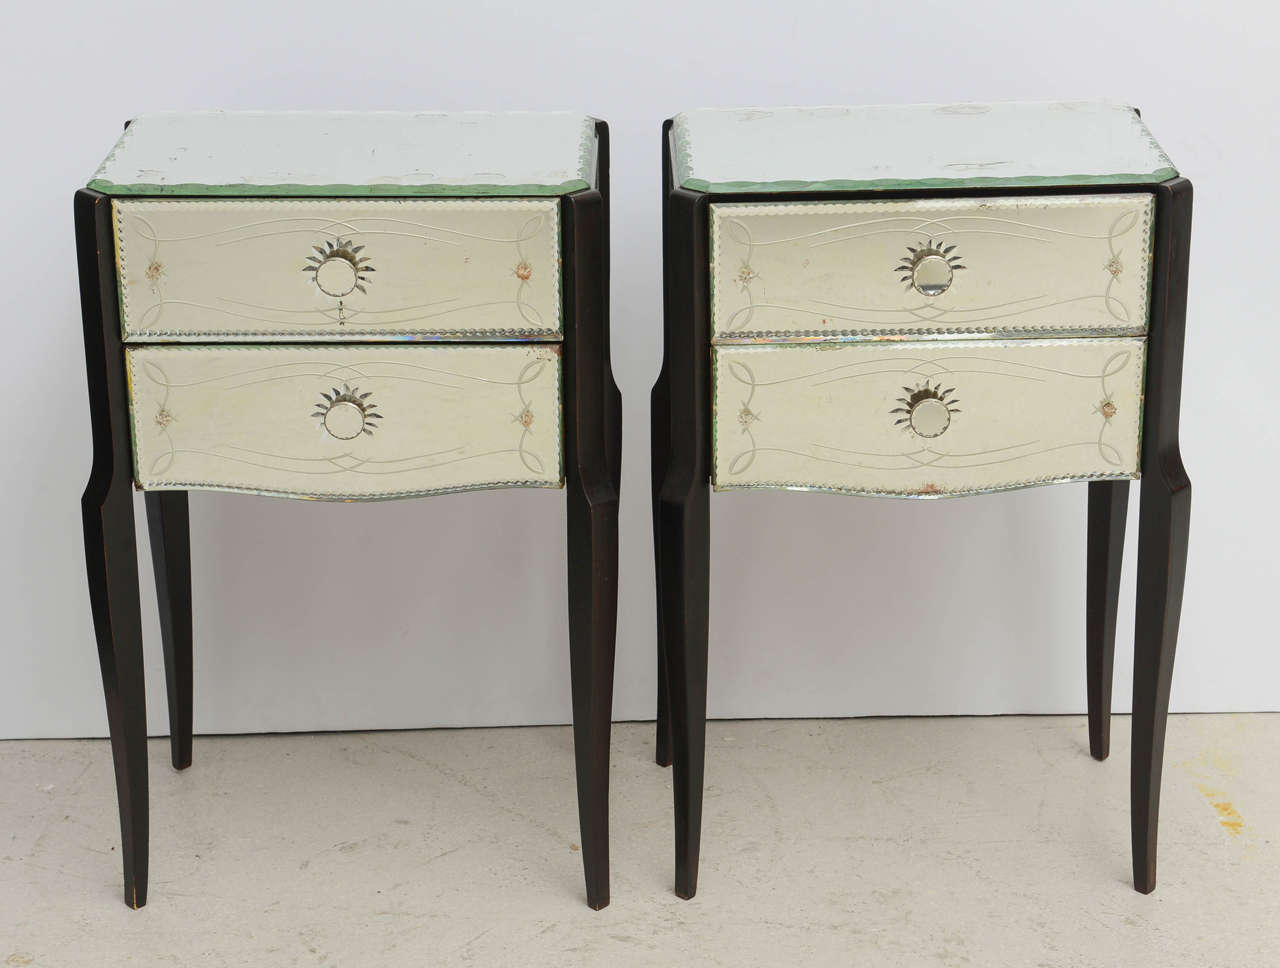 Mirror Bedside Table : Pair of Mirrored French Bedside Tables at 1stdibs